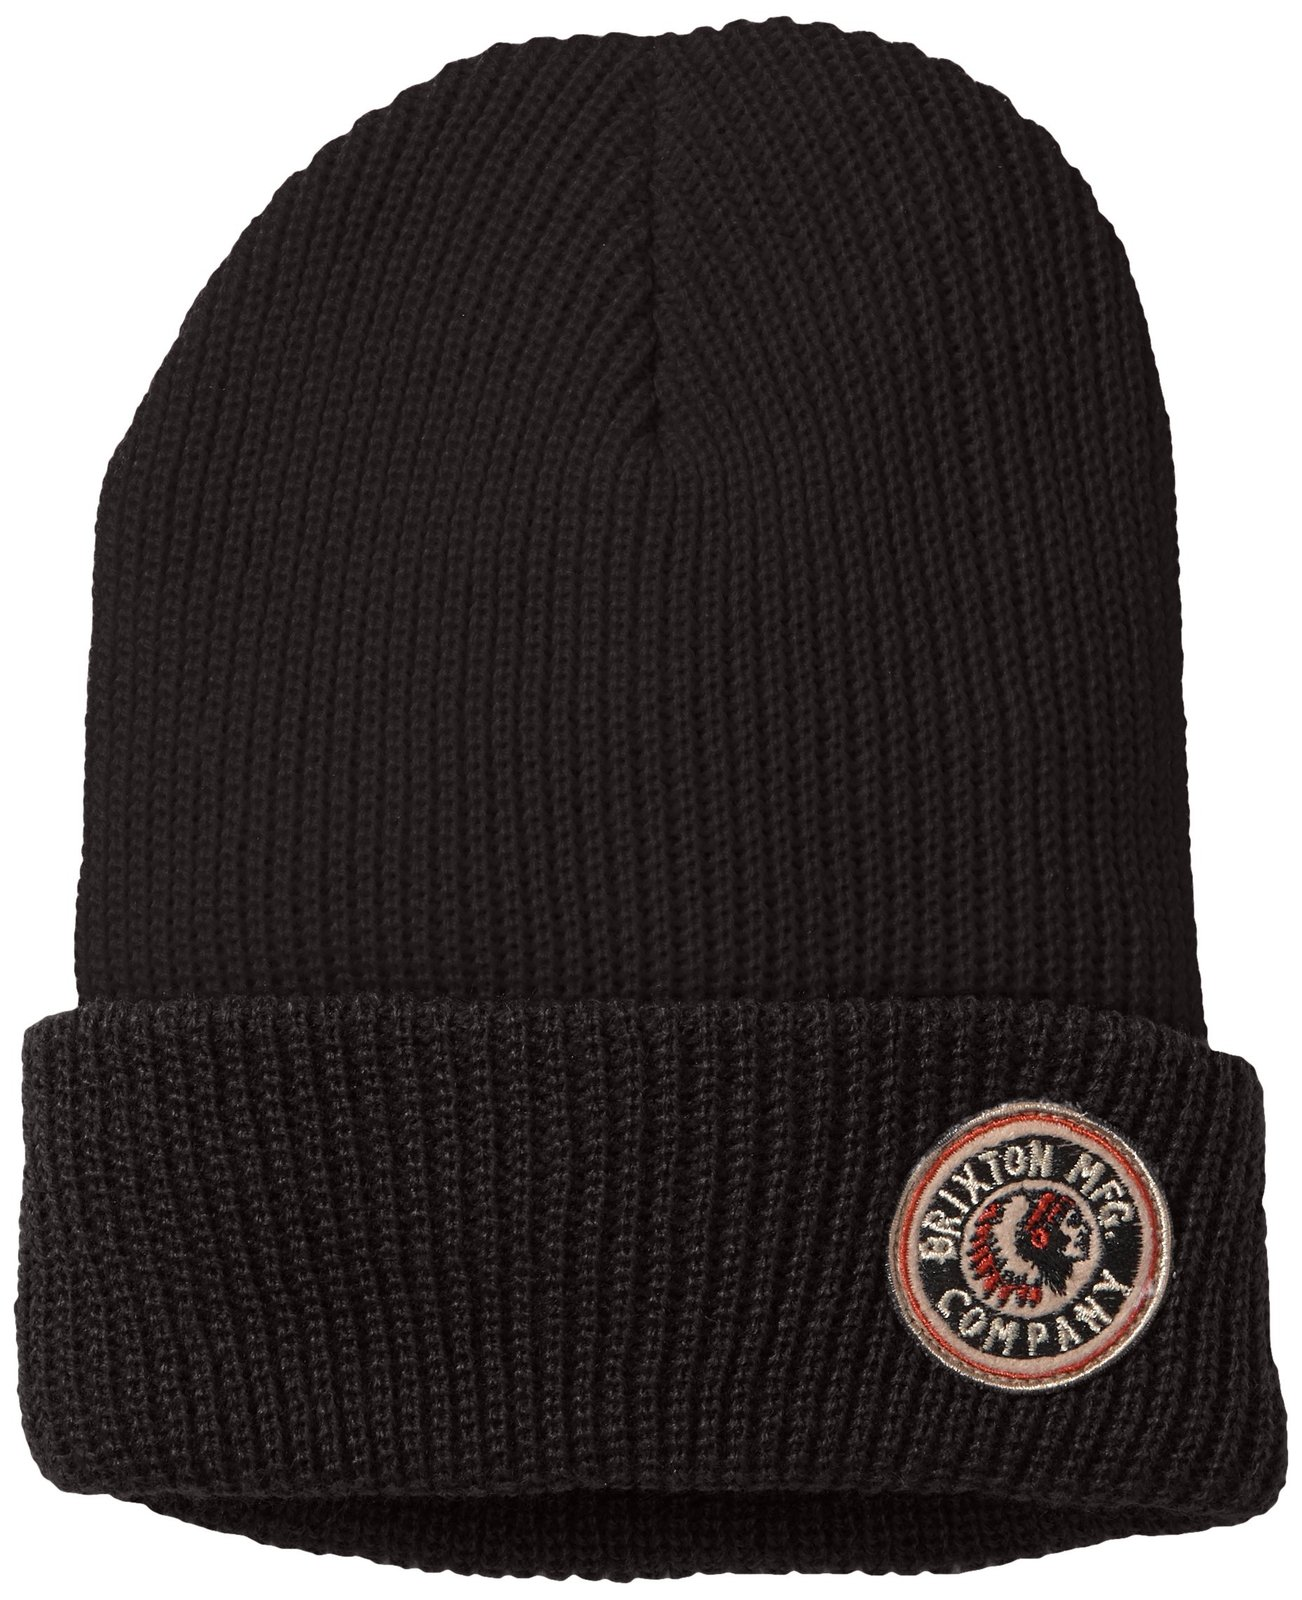 Brixton Rival Beanie Black, One Size